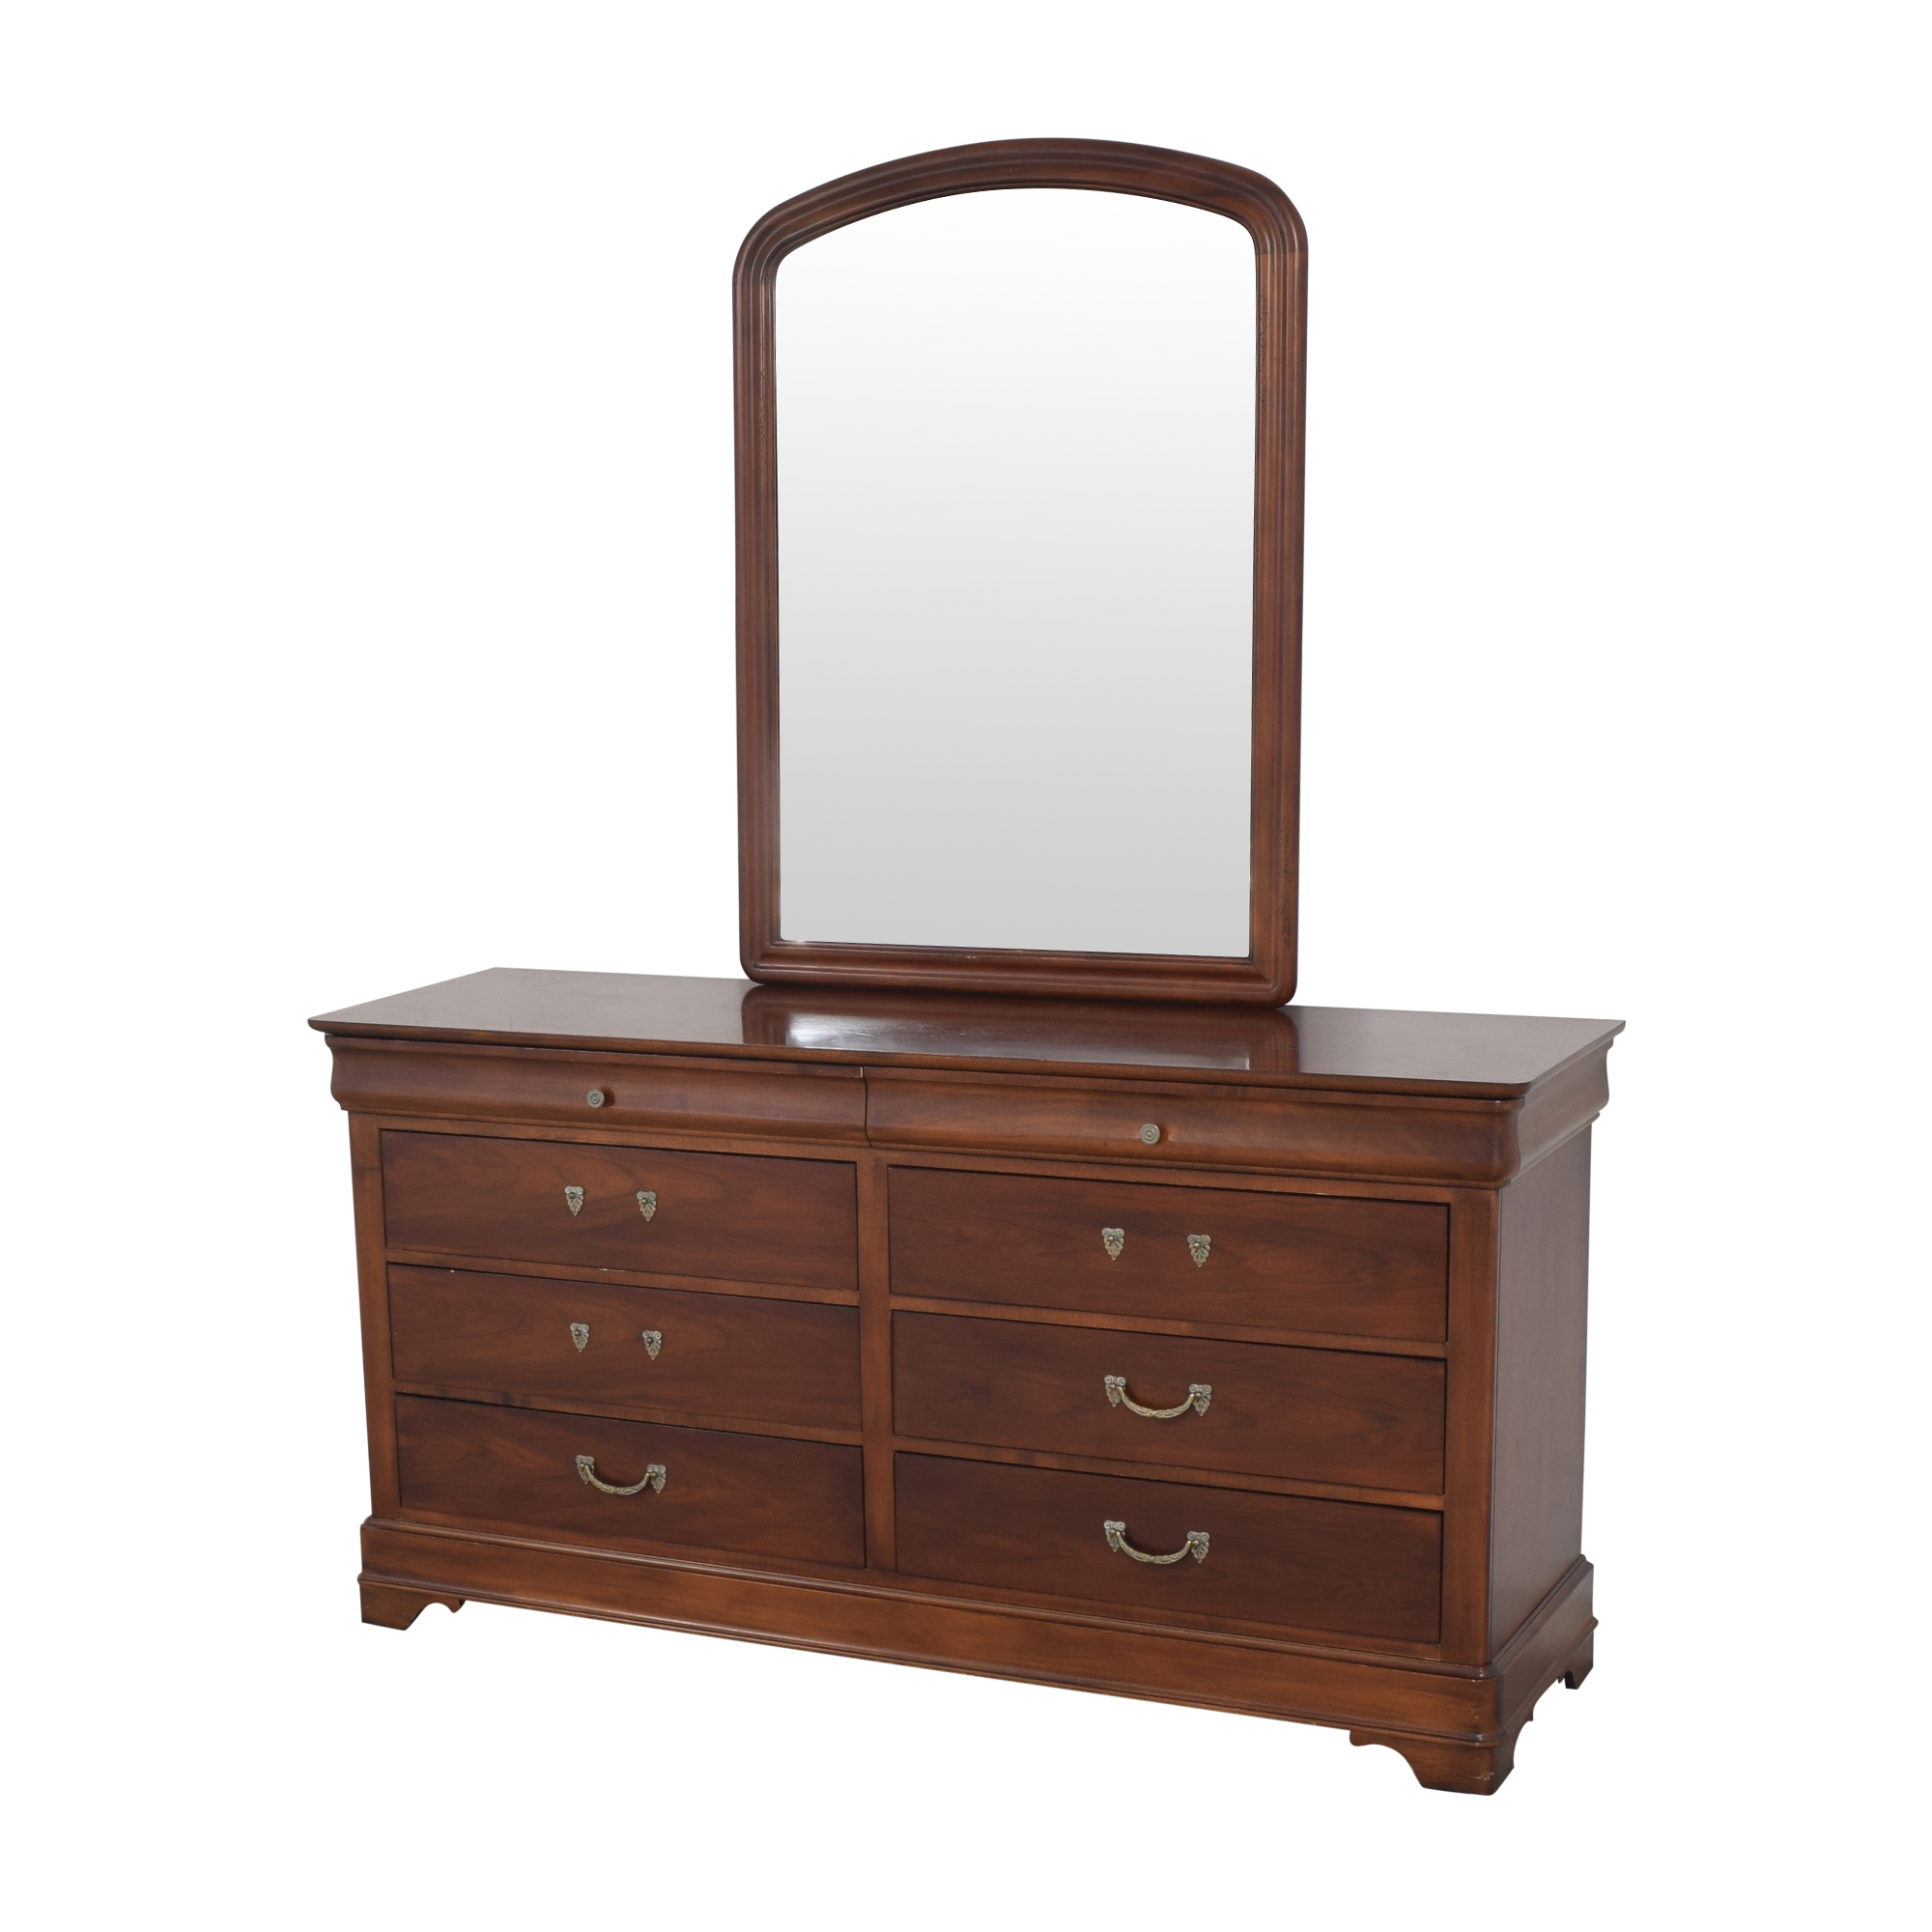 Drexel Heritage Drexel Heritage Delshire Double Dresser with Mirror dimensions